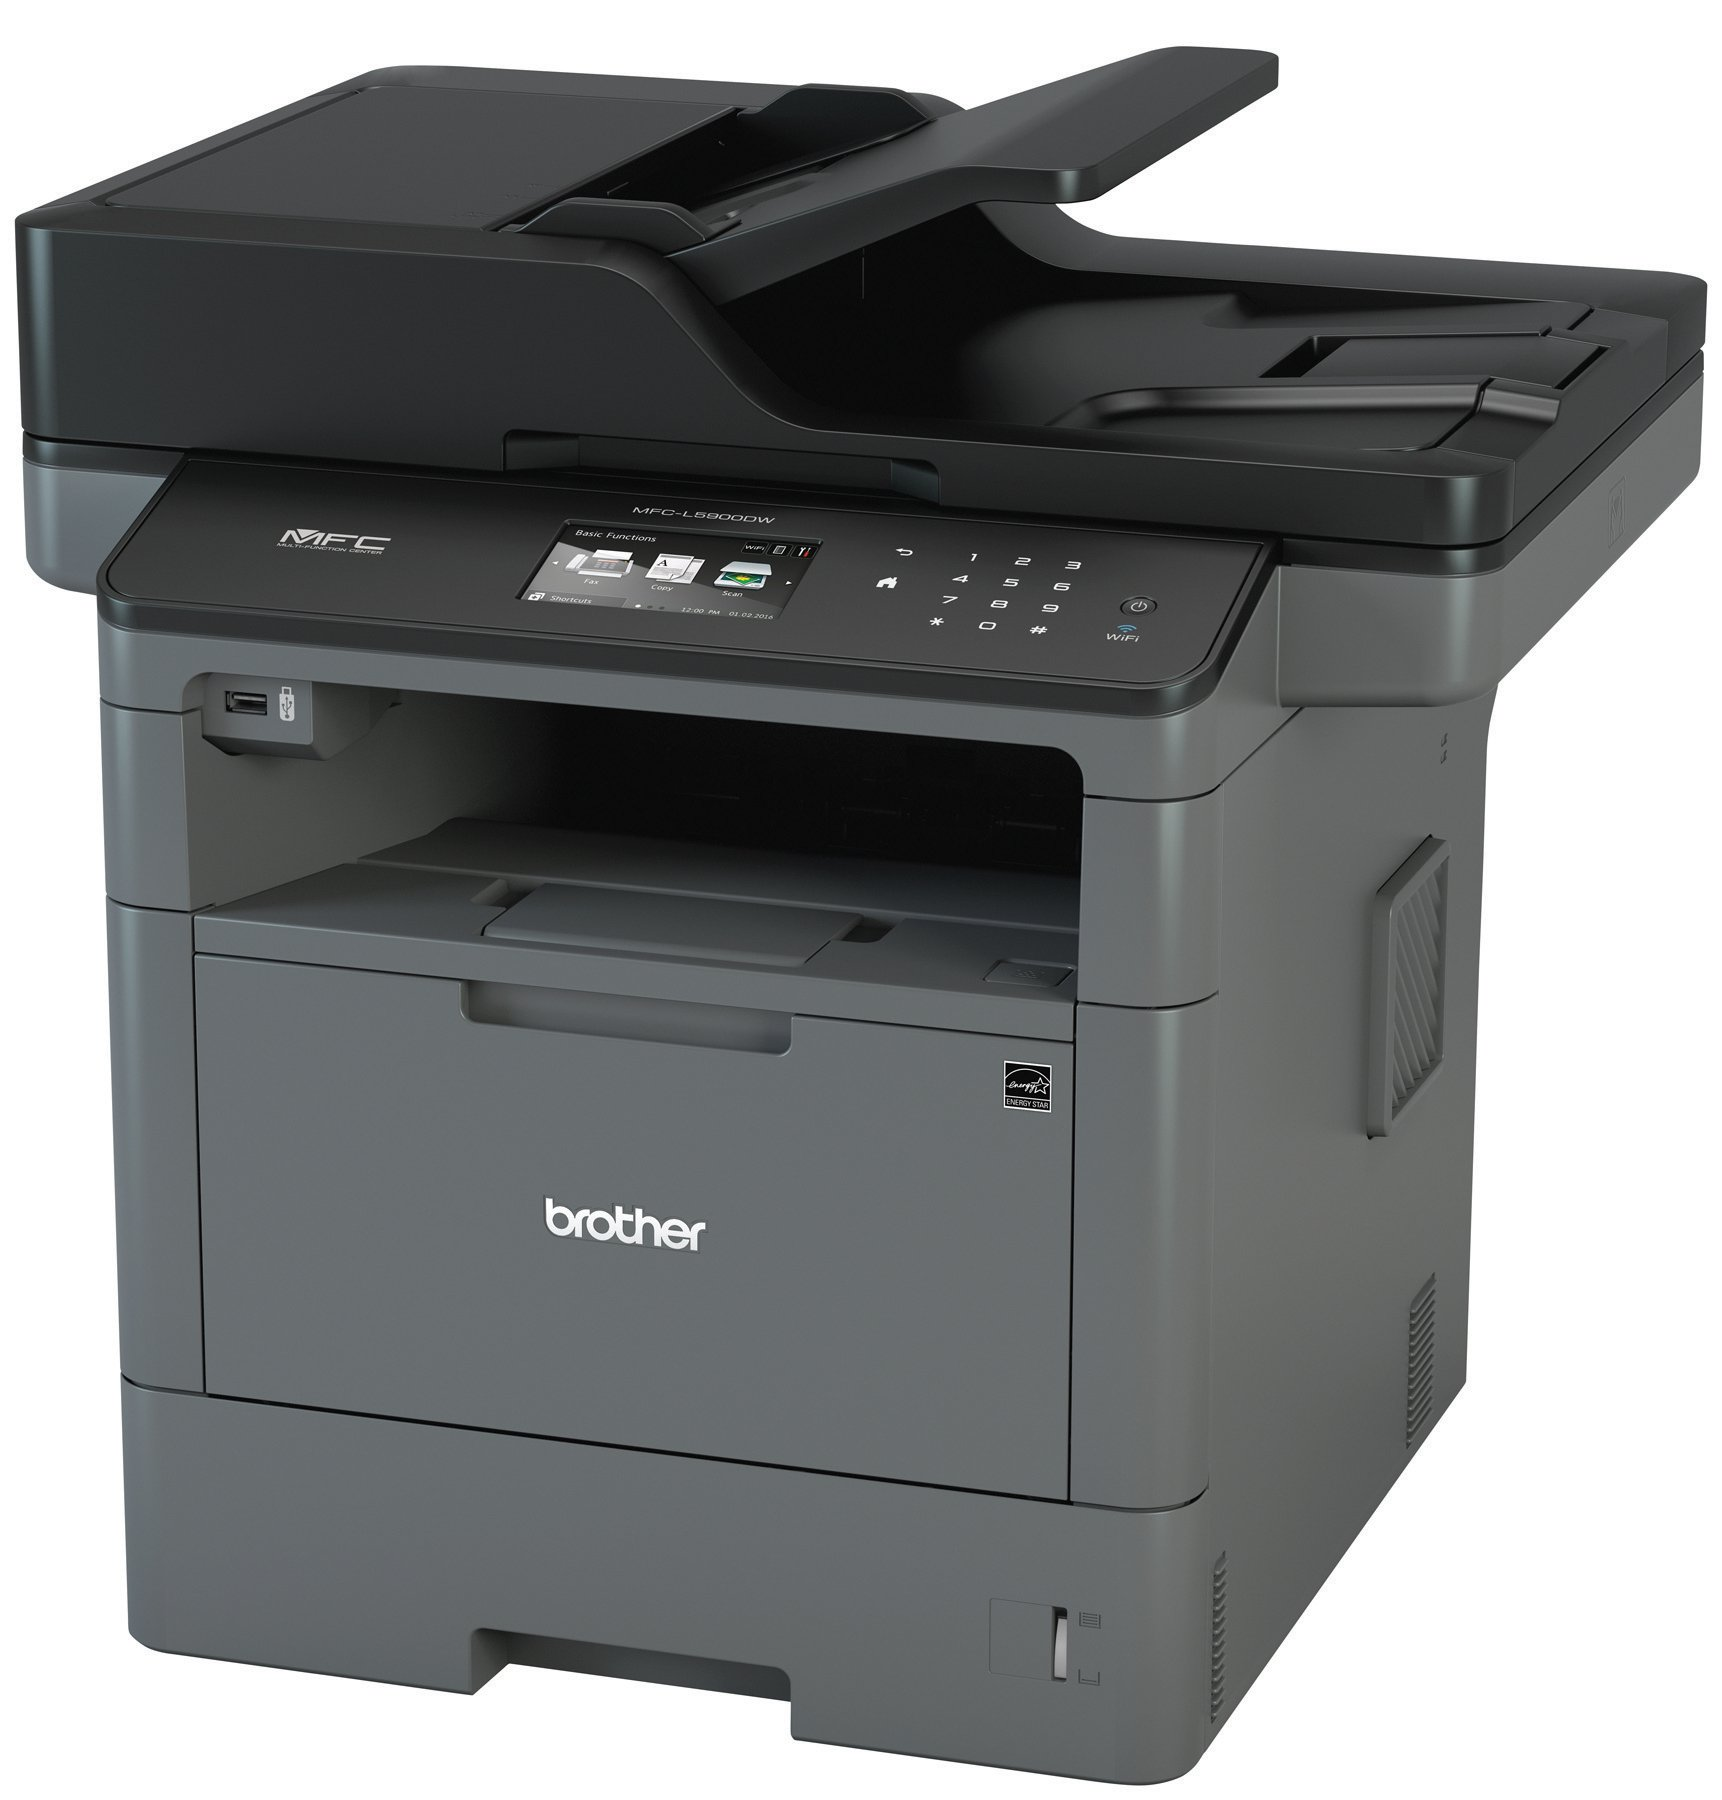 Brother MFC-L5900DW Laser Monochrome Printer